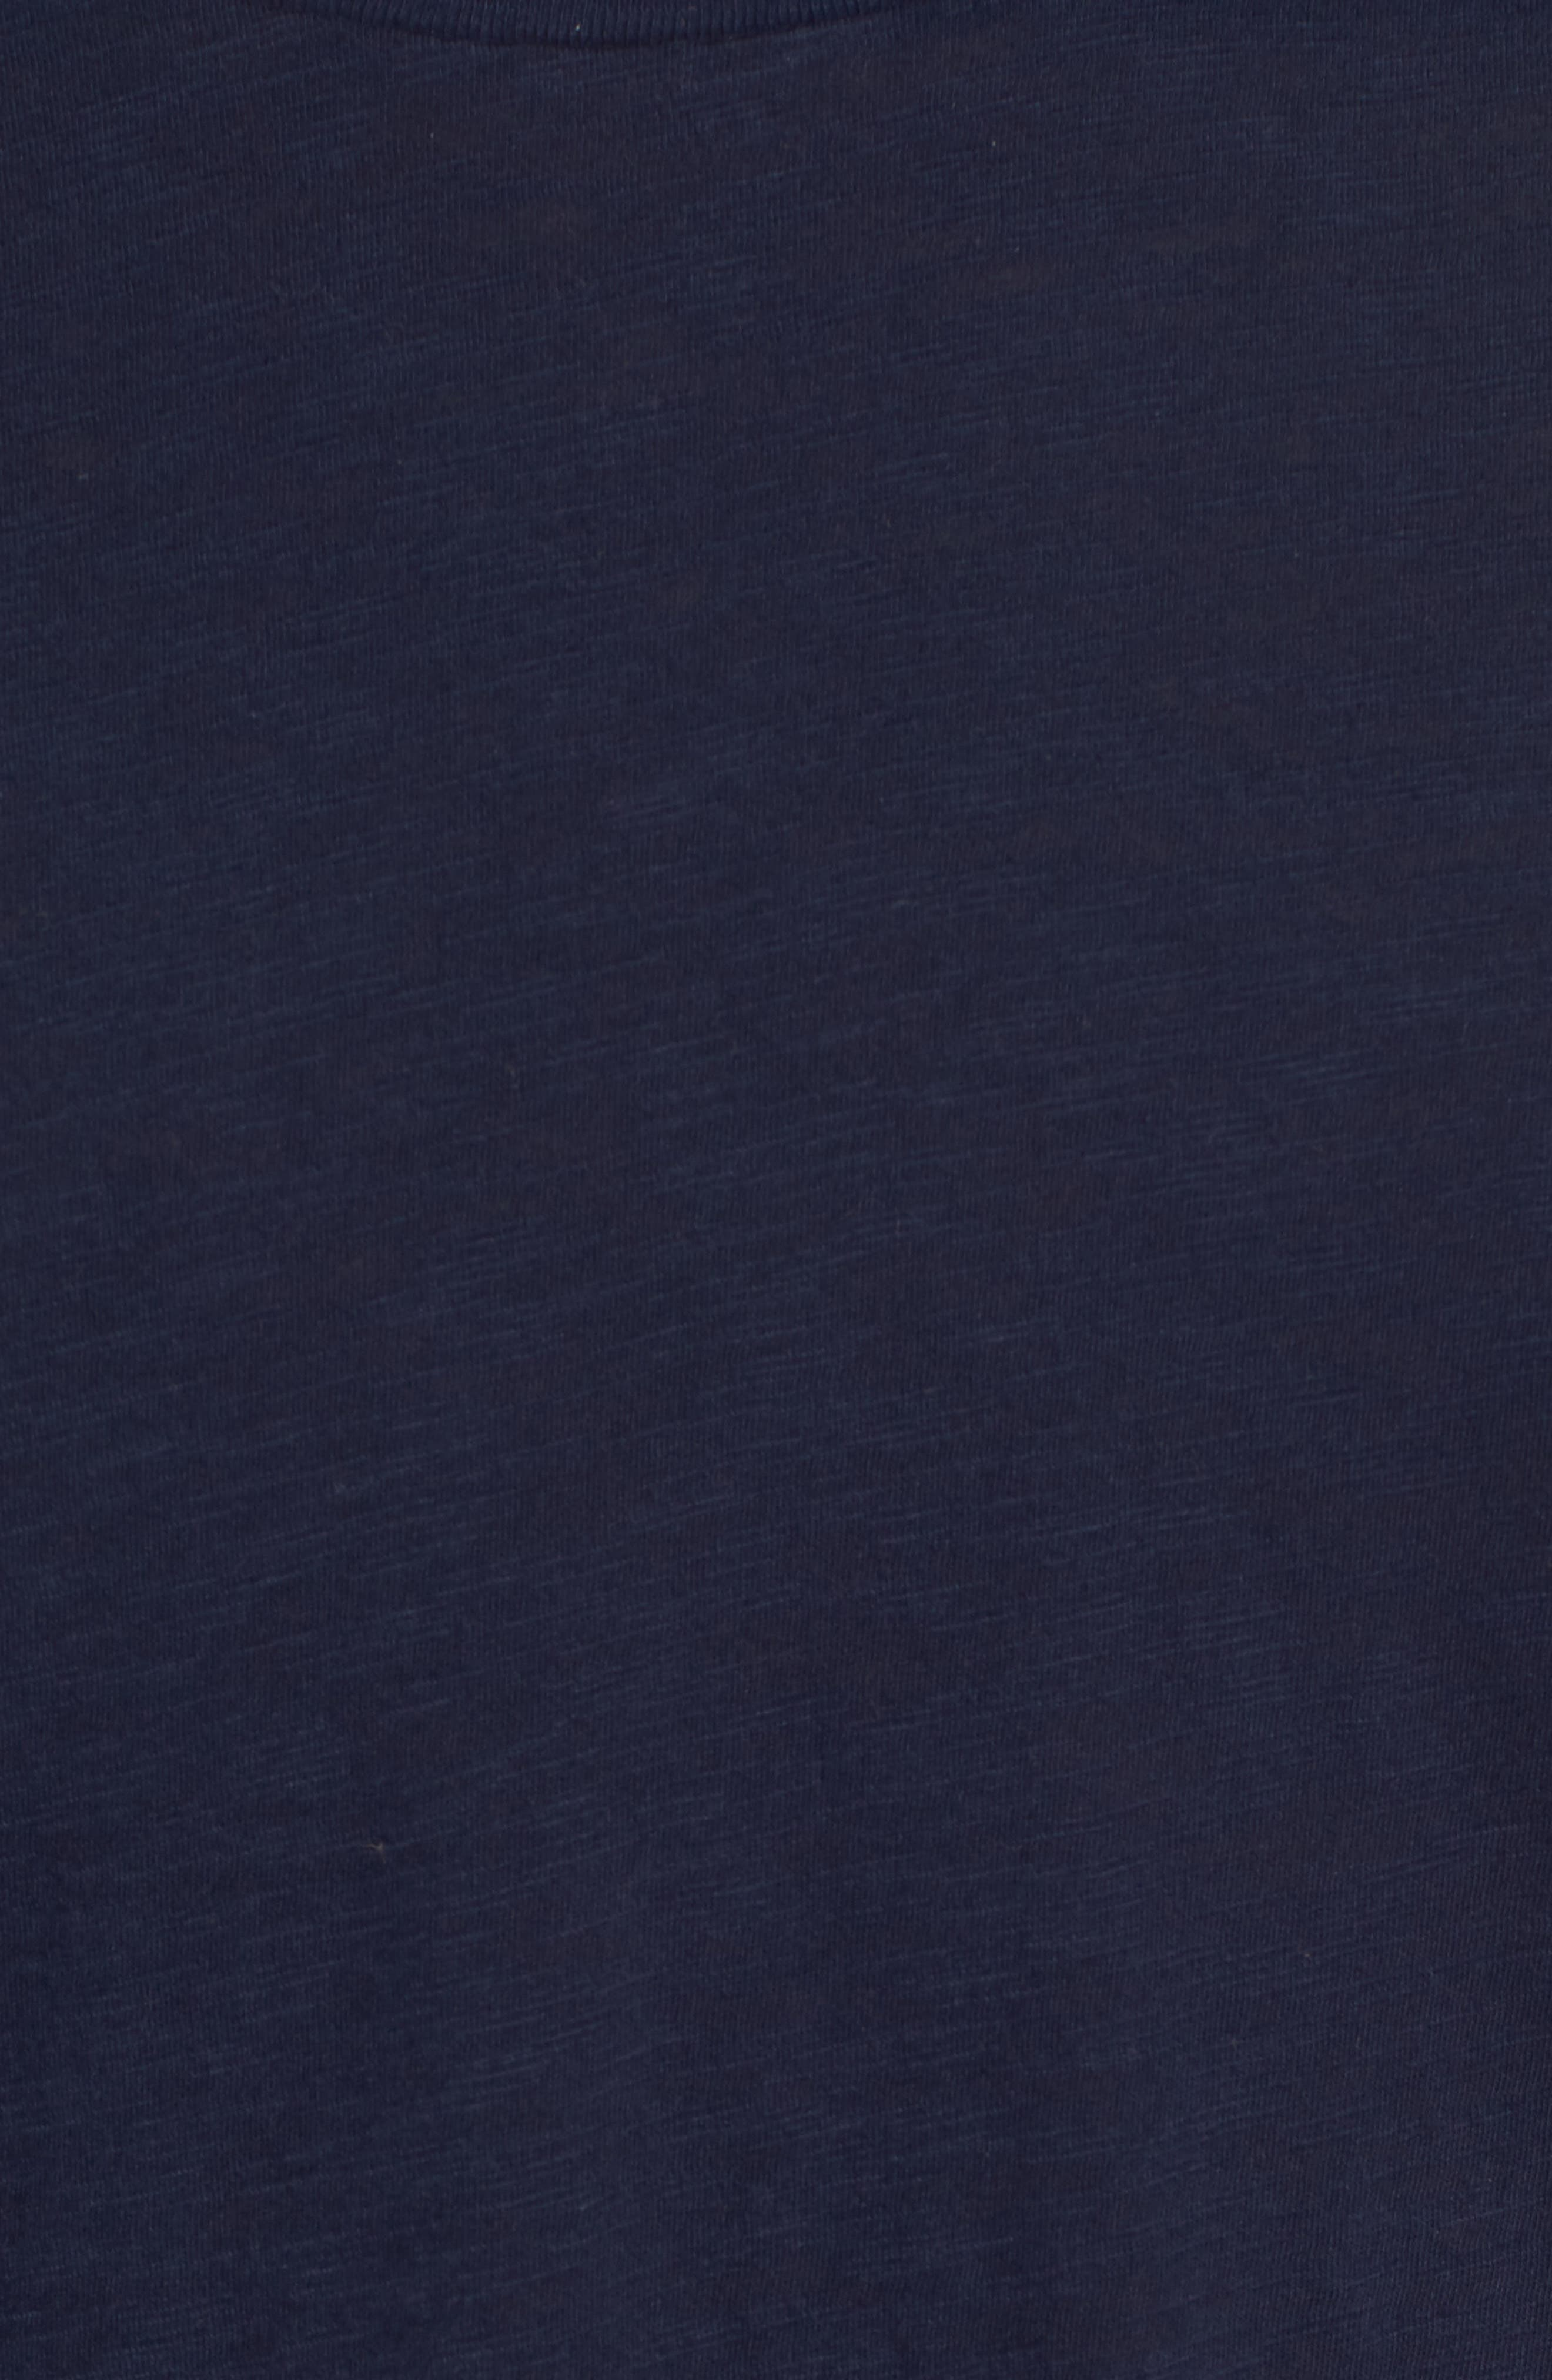 Raglan T-Shirt,                             Alternate thumbnail 5, color,                             INDIGO STRIPE SHIBORI INDIGO